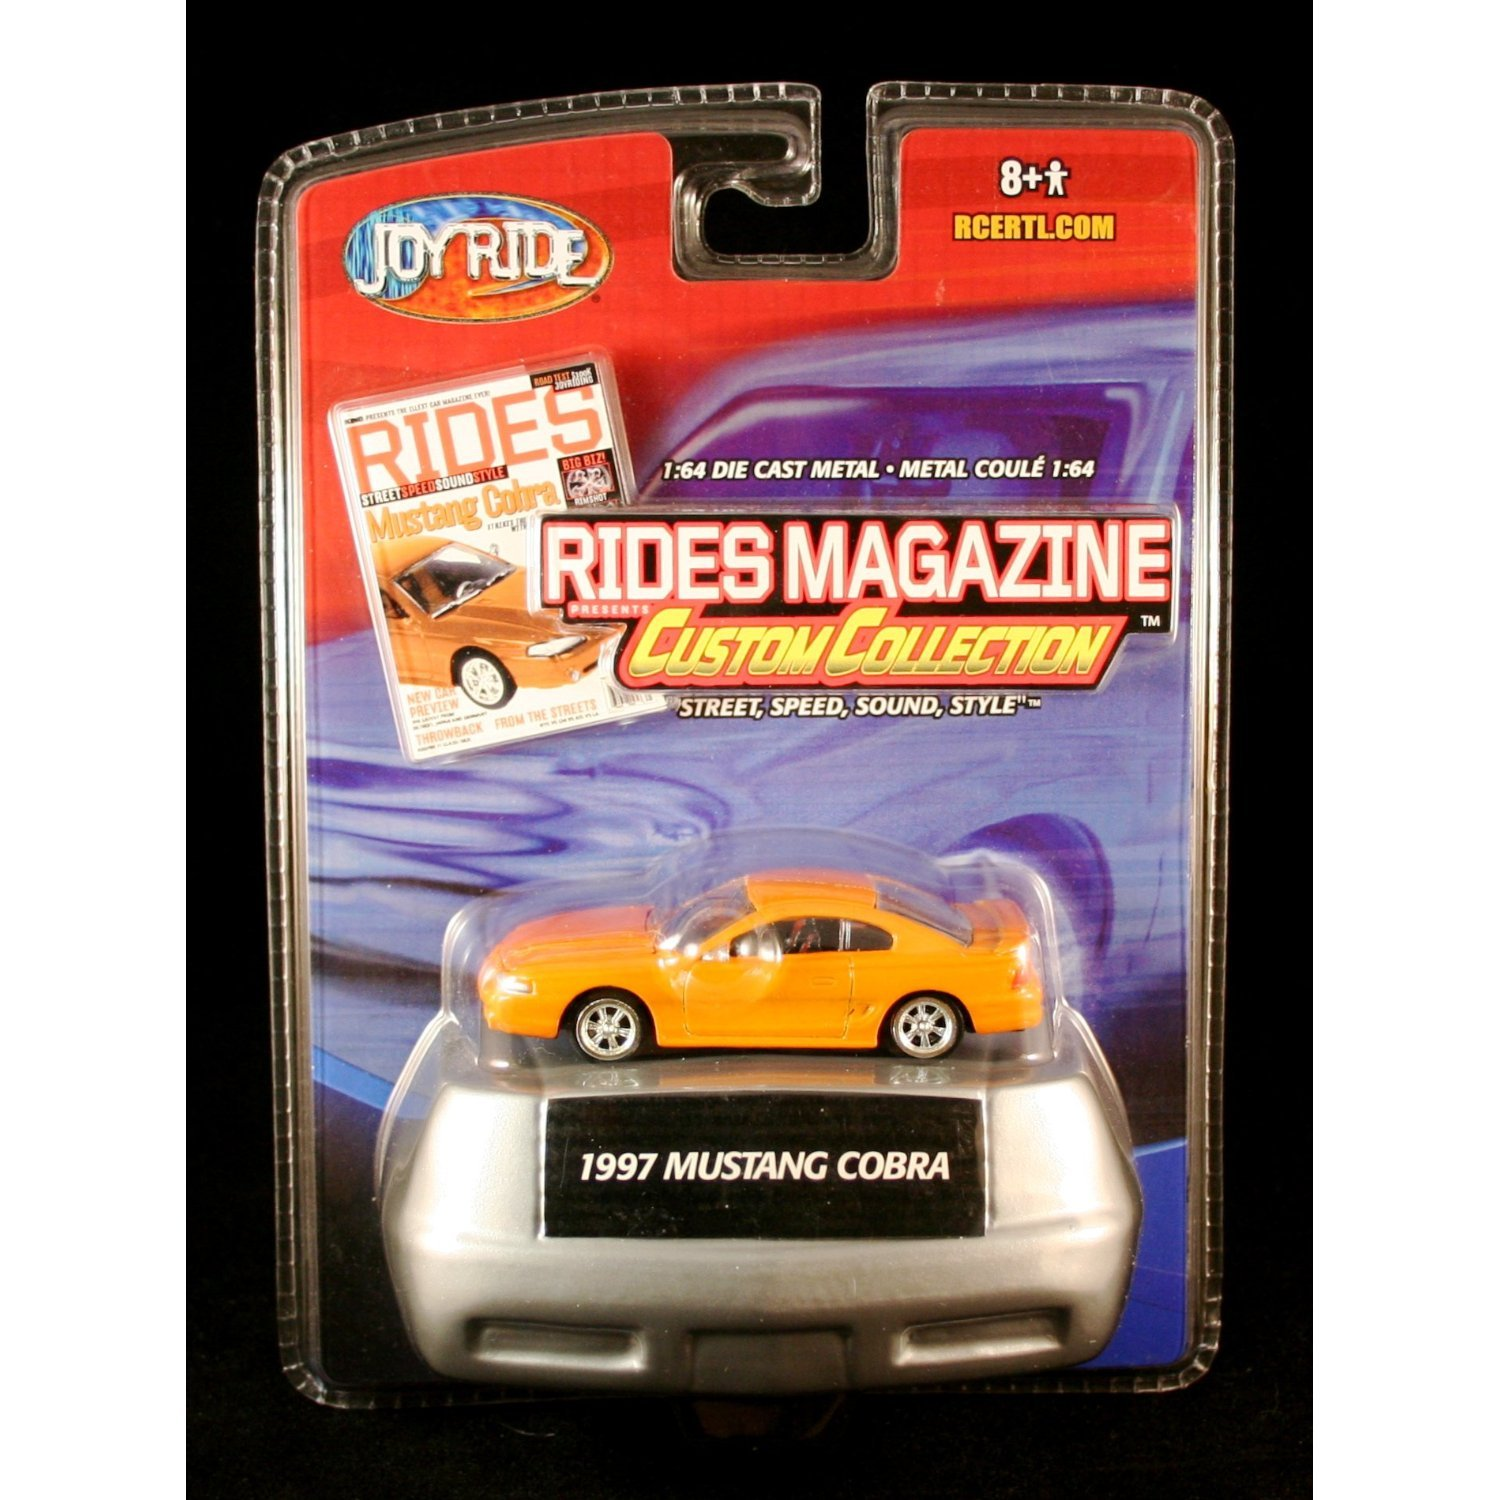 1997 MUSTANG COBRA Joy Ride RIDES MAGAZINE CUSTOM COLLECTION 1:64 Scale Die Cast Vehicle